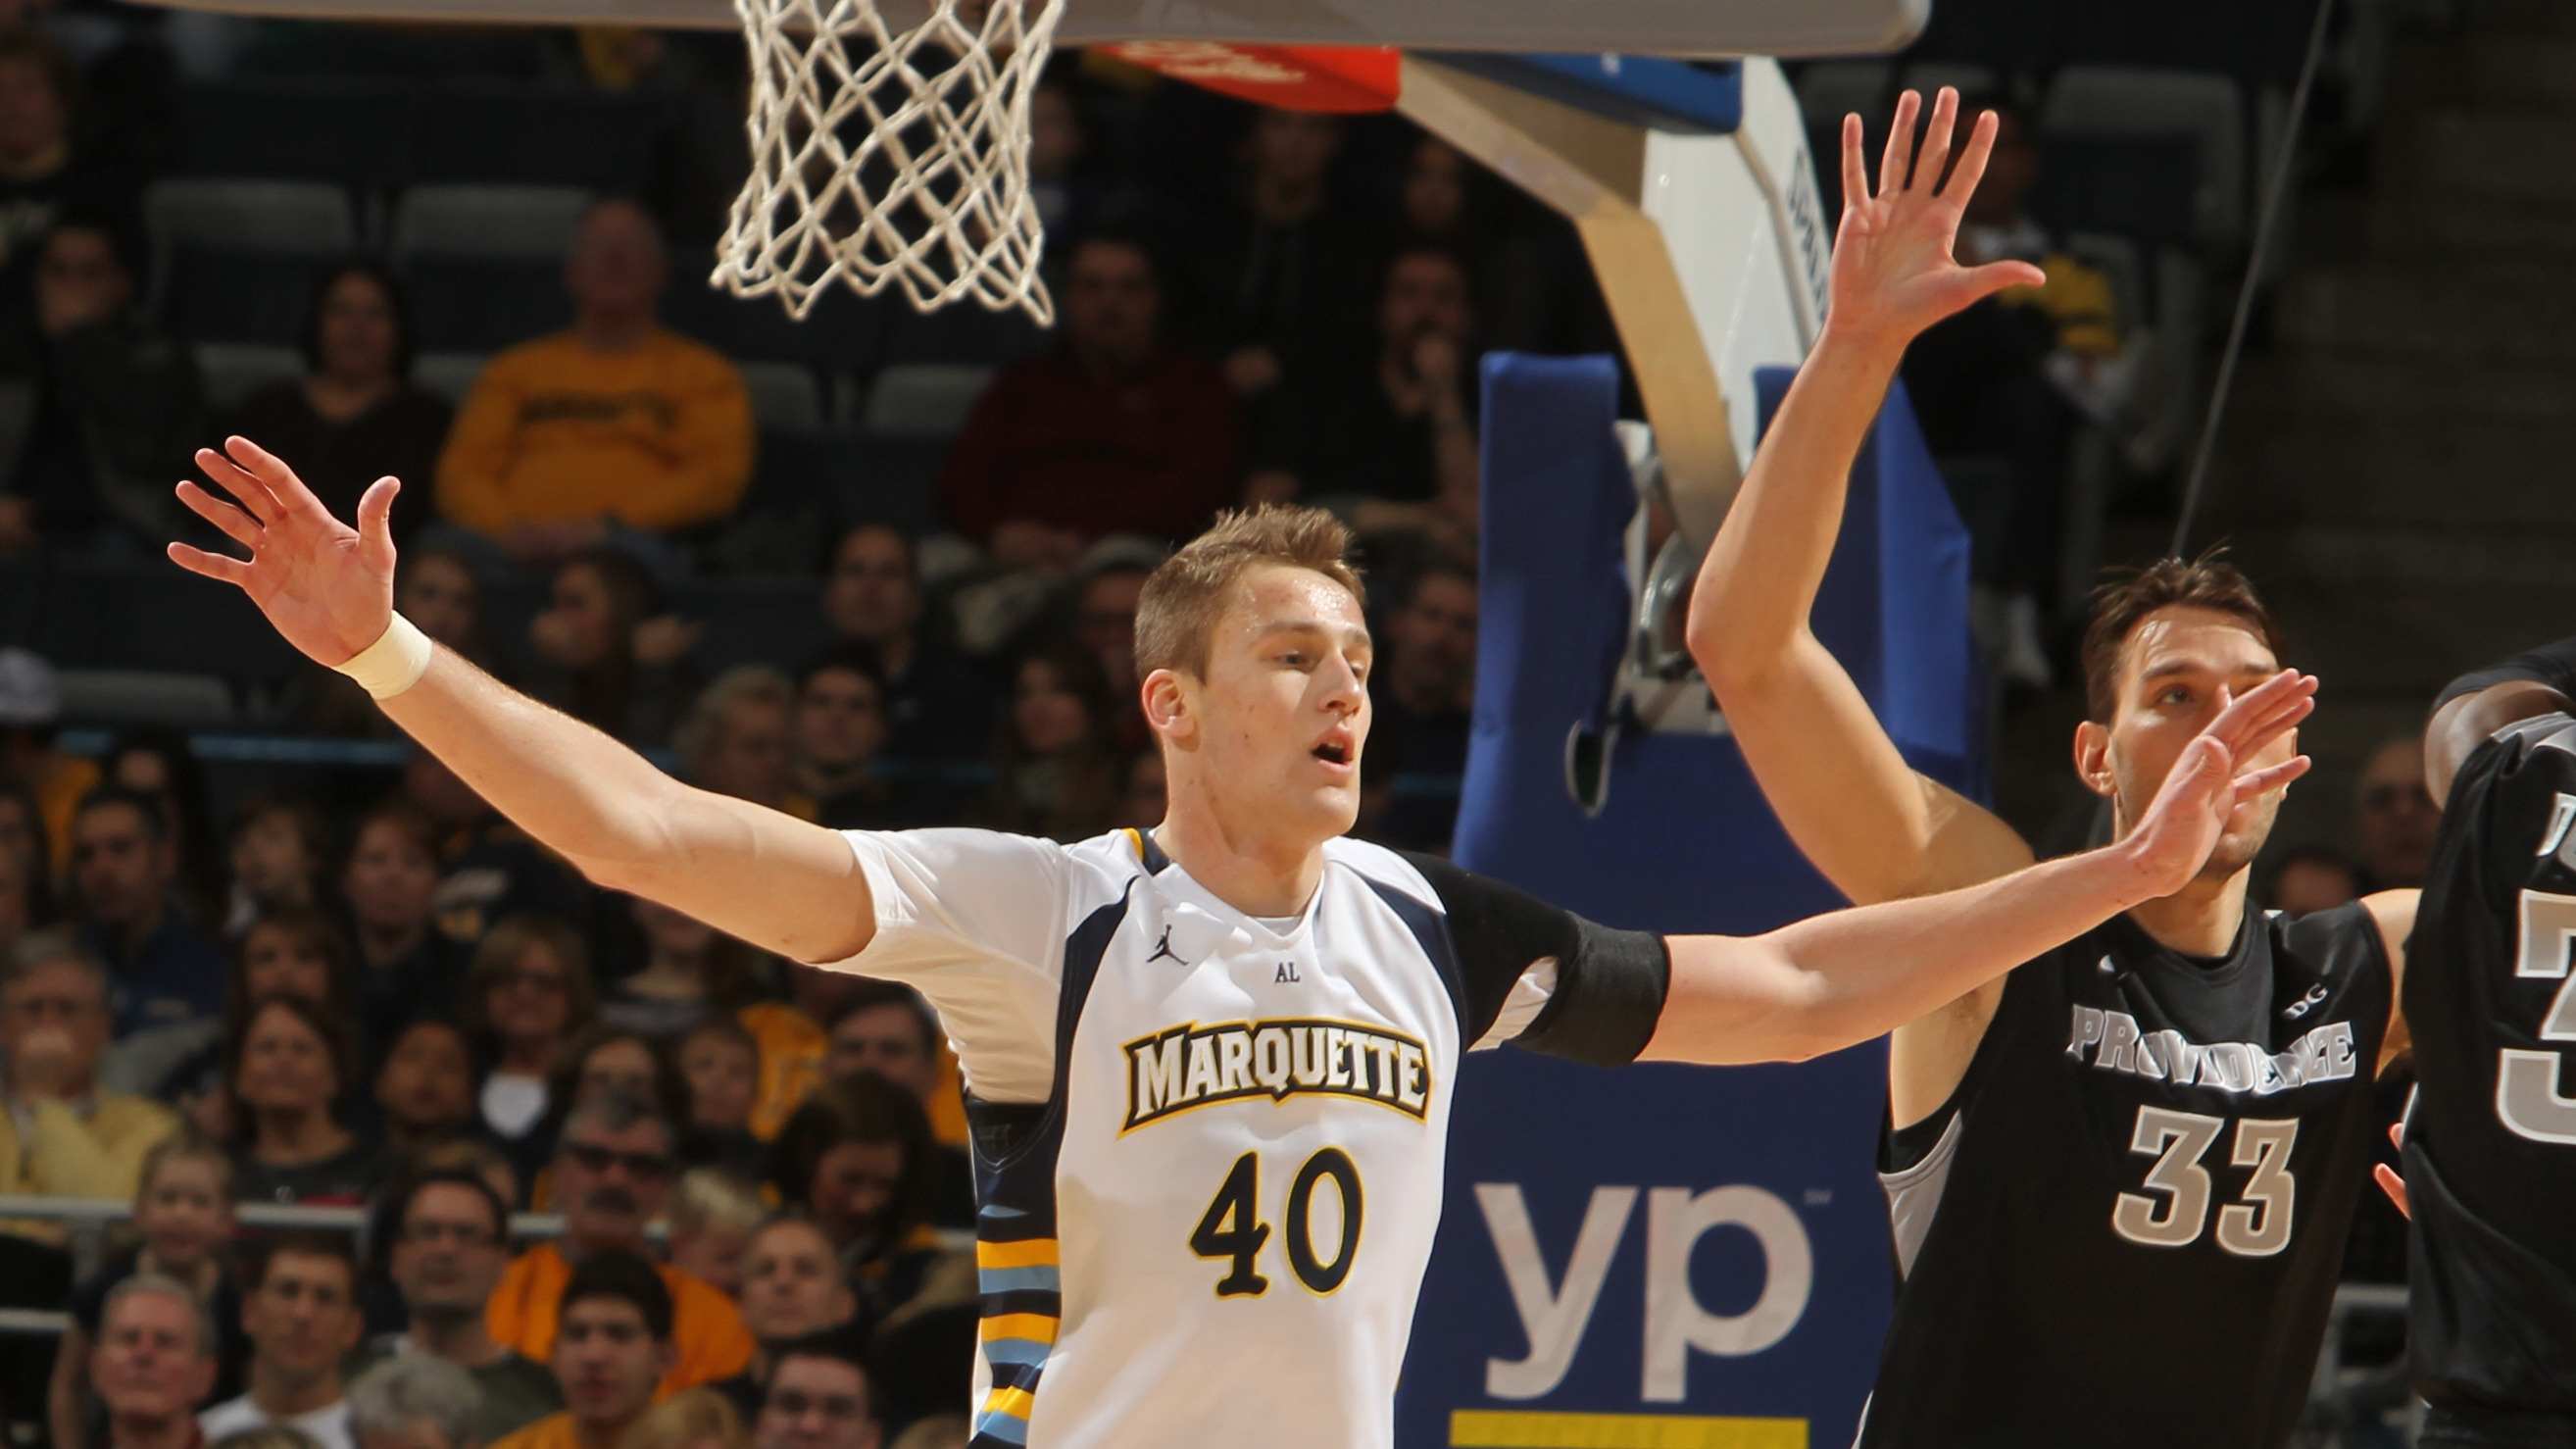 Luke Fischer was a perfect 6-of-6 from the floor and is 40-for-49 (.816) on the season.